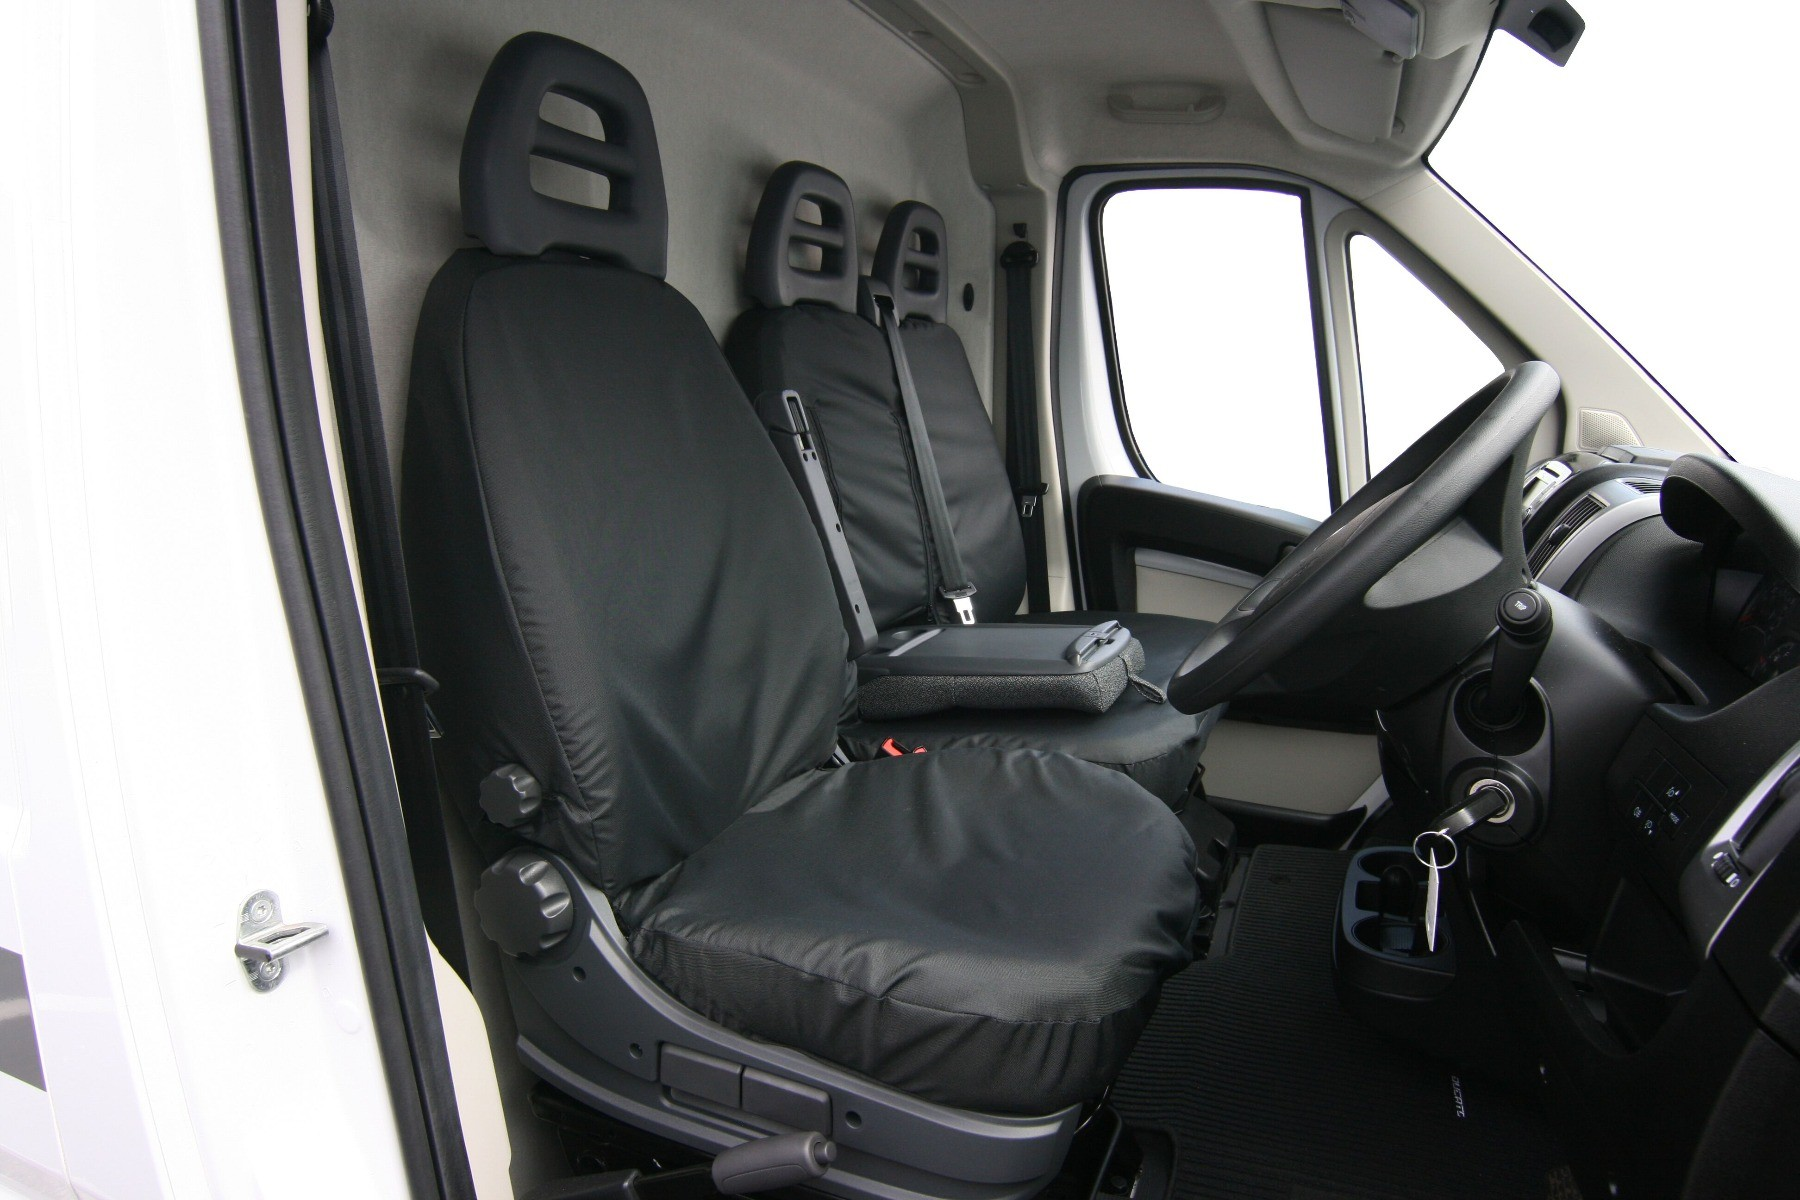 Driver or Passenger Single Seat Covers.Peugeot Boxer 2006 On,Original Town & Country Seat